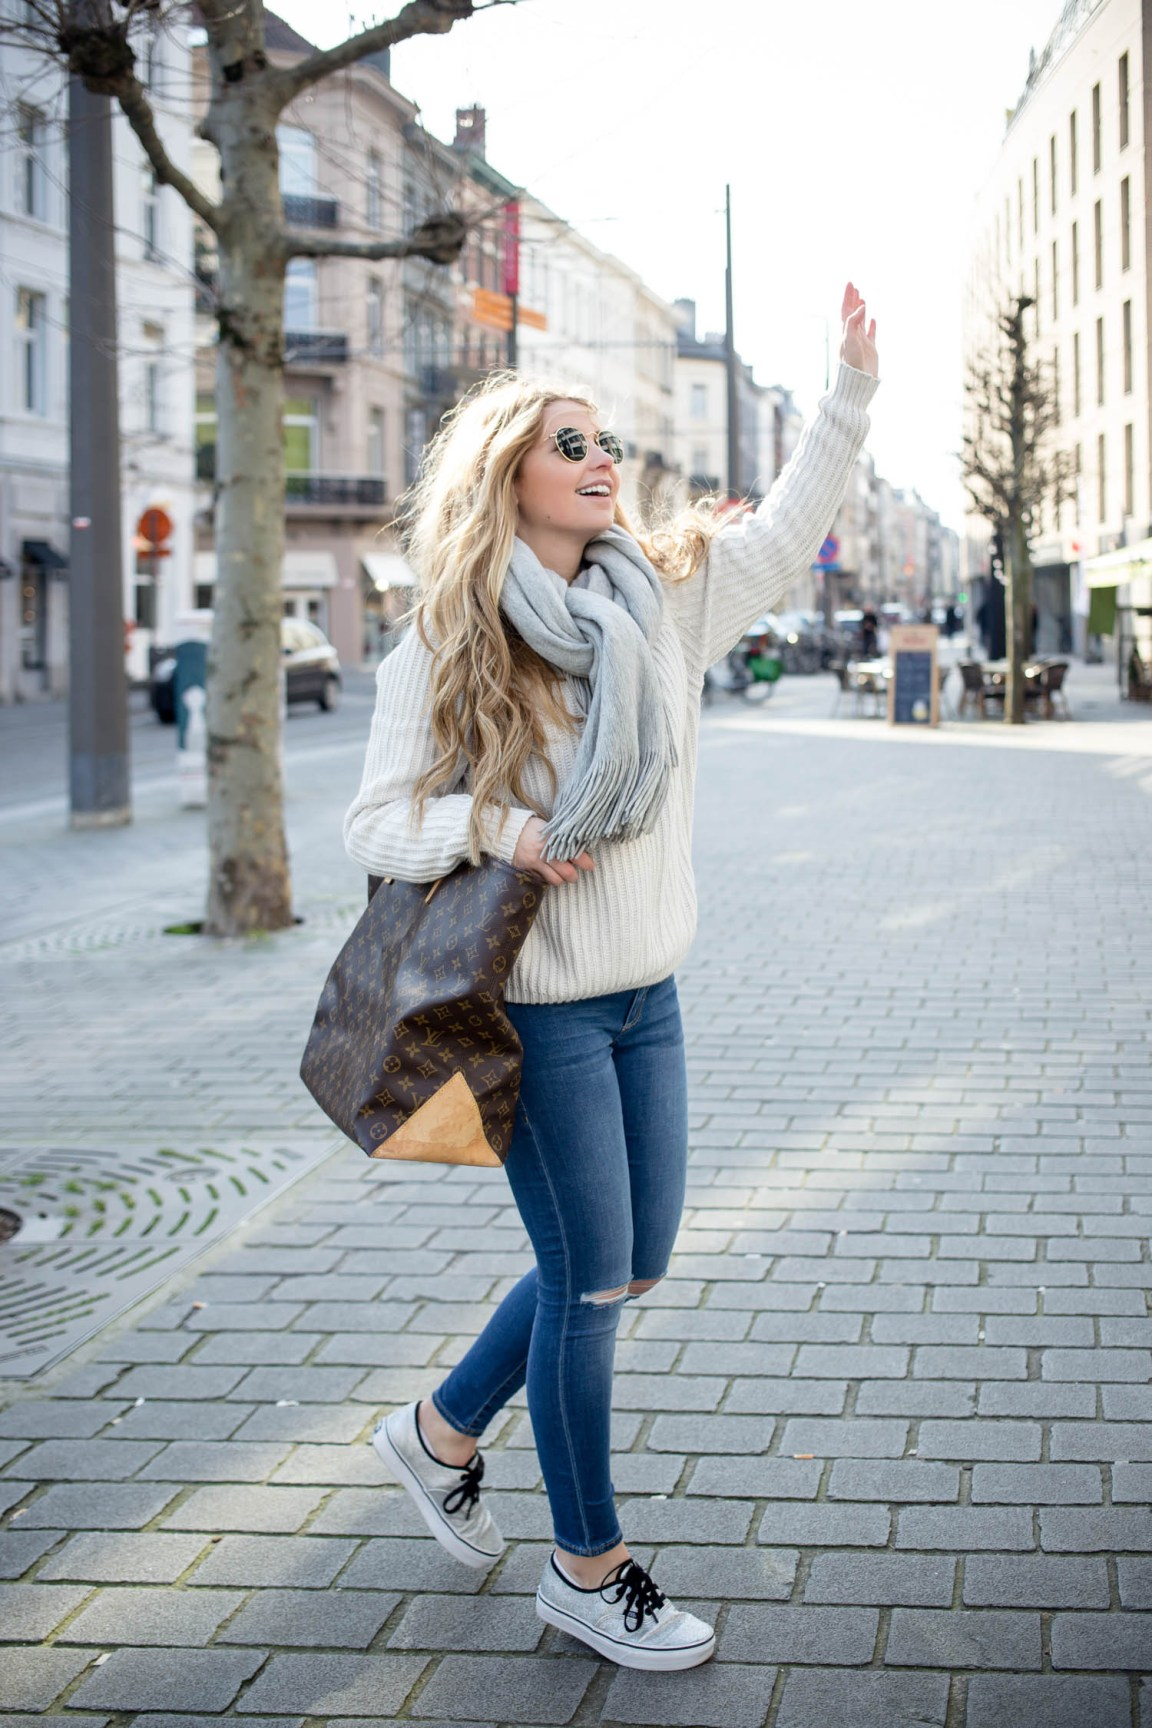 Elien Migalski Streetstyle Outfit-28